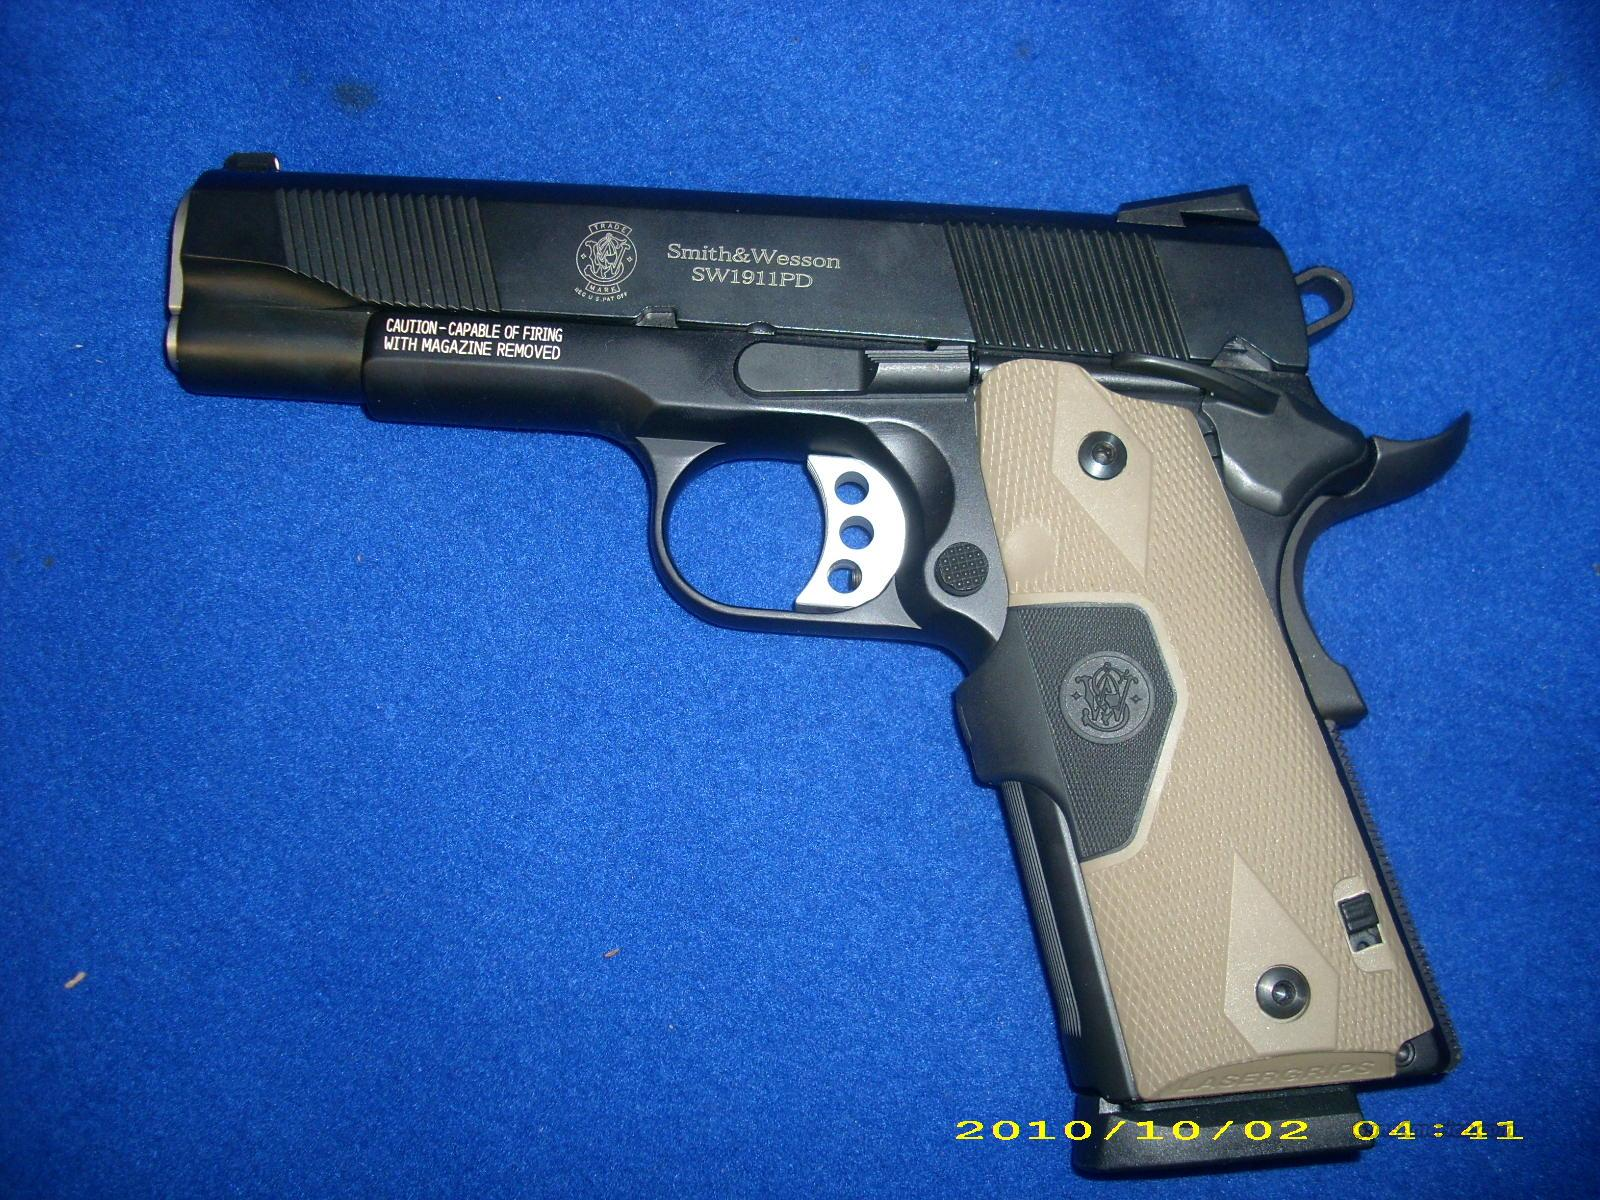 Smith and Wesson 1911PD 45 Auto  Guns > Pistols > Smith & Wesson Pistols - Autos > Polymer Frame